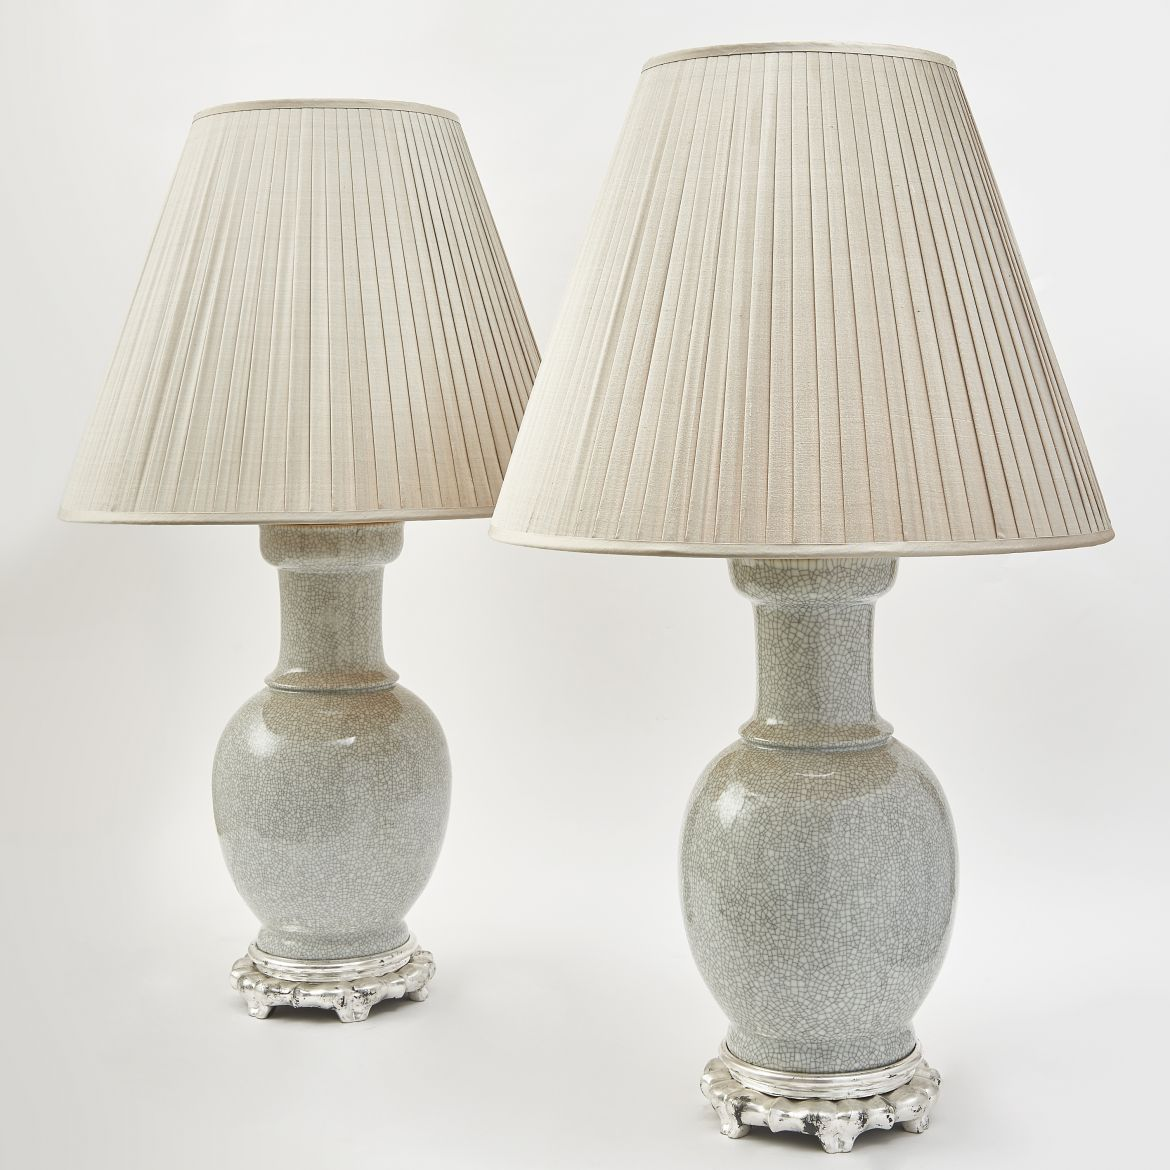 Chinese Crackleware Porcelain Lamps